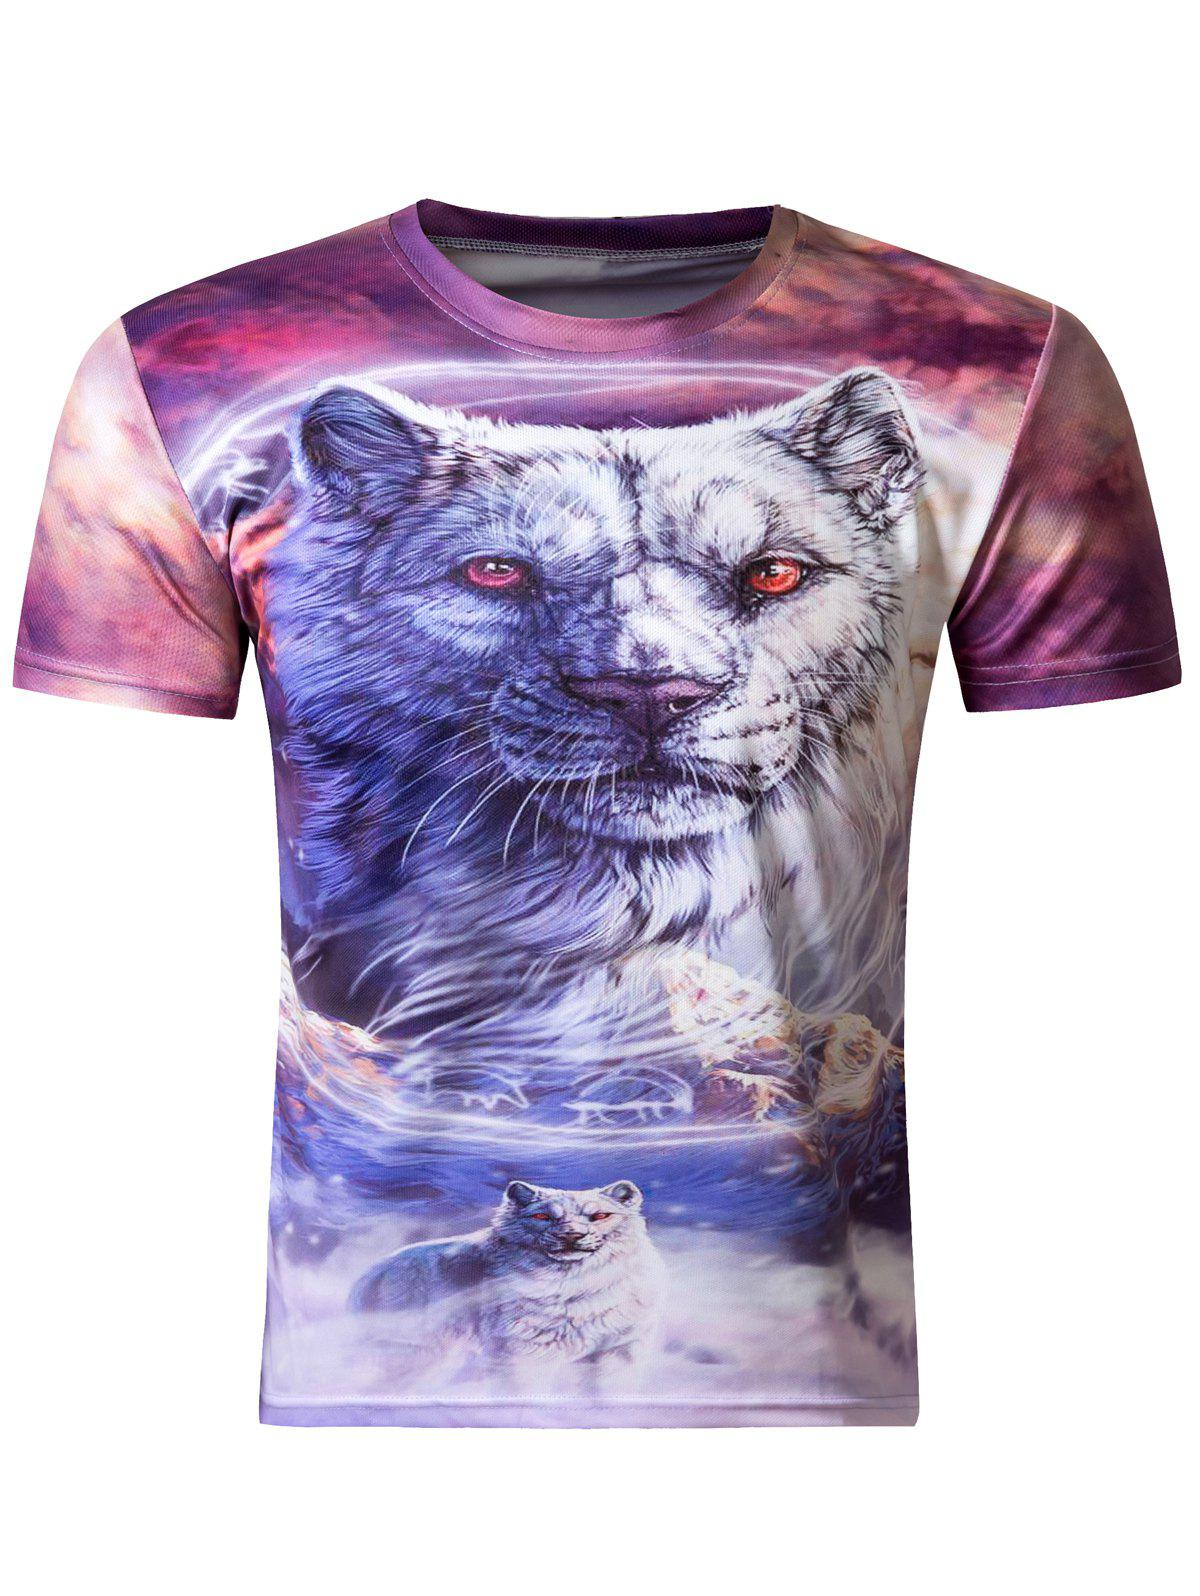 Stylish 3D Round Neck White Tiger Print Short Sleeve T-Shirt For MenMen<br><br><br>Size: 2XL<br>Color: COLORMIX